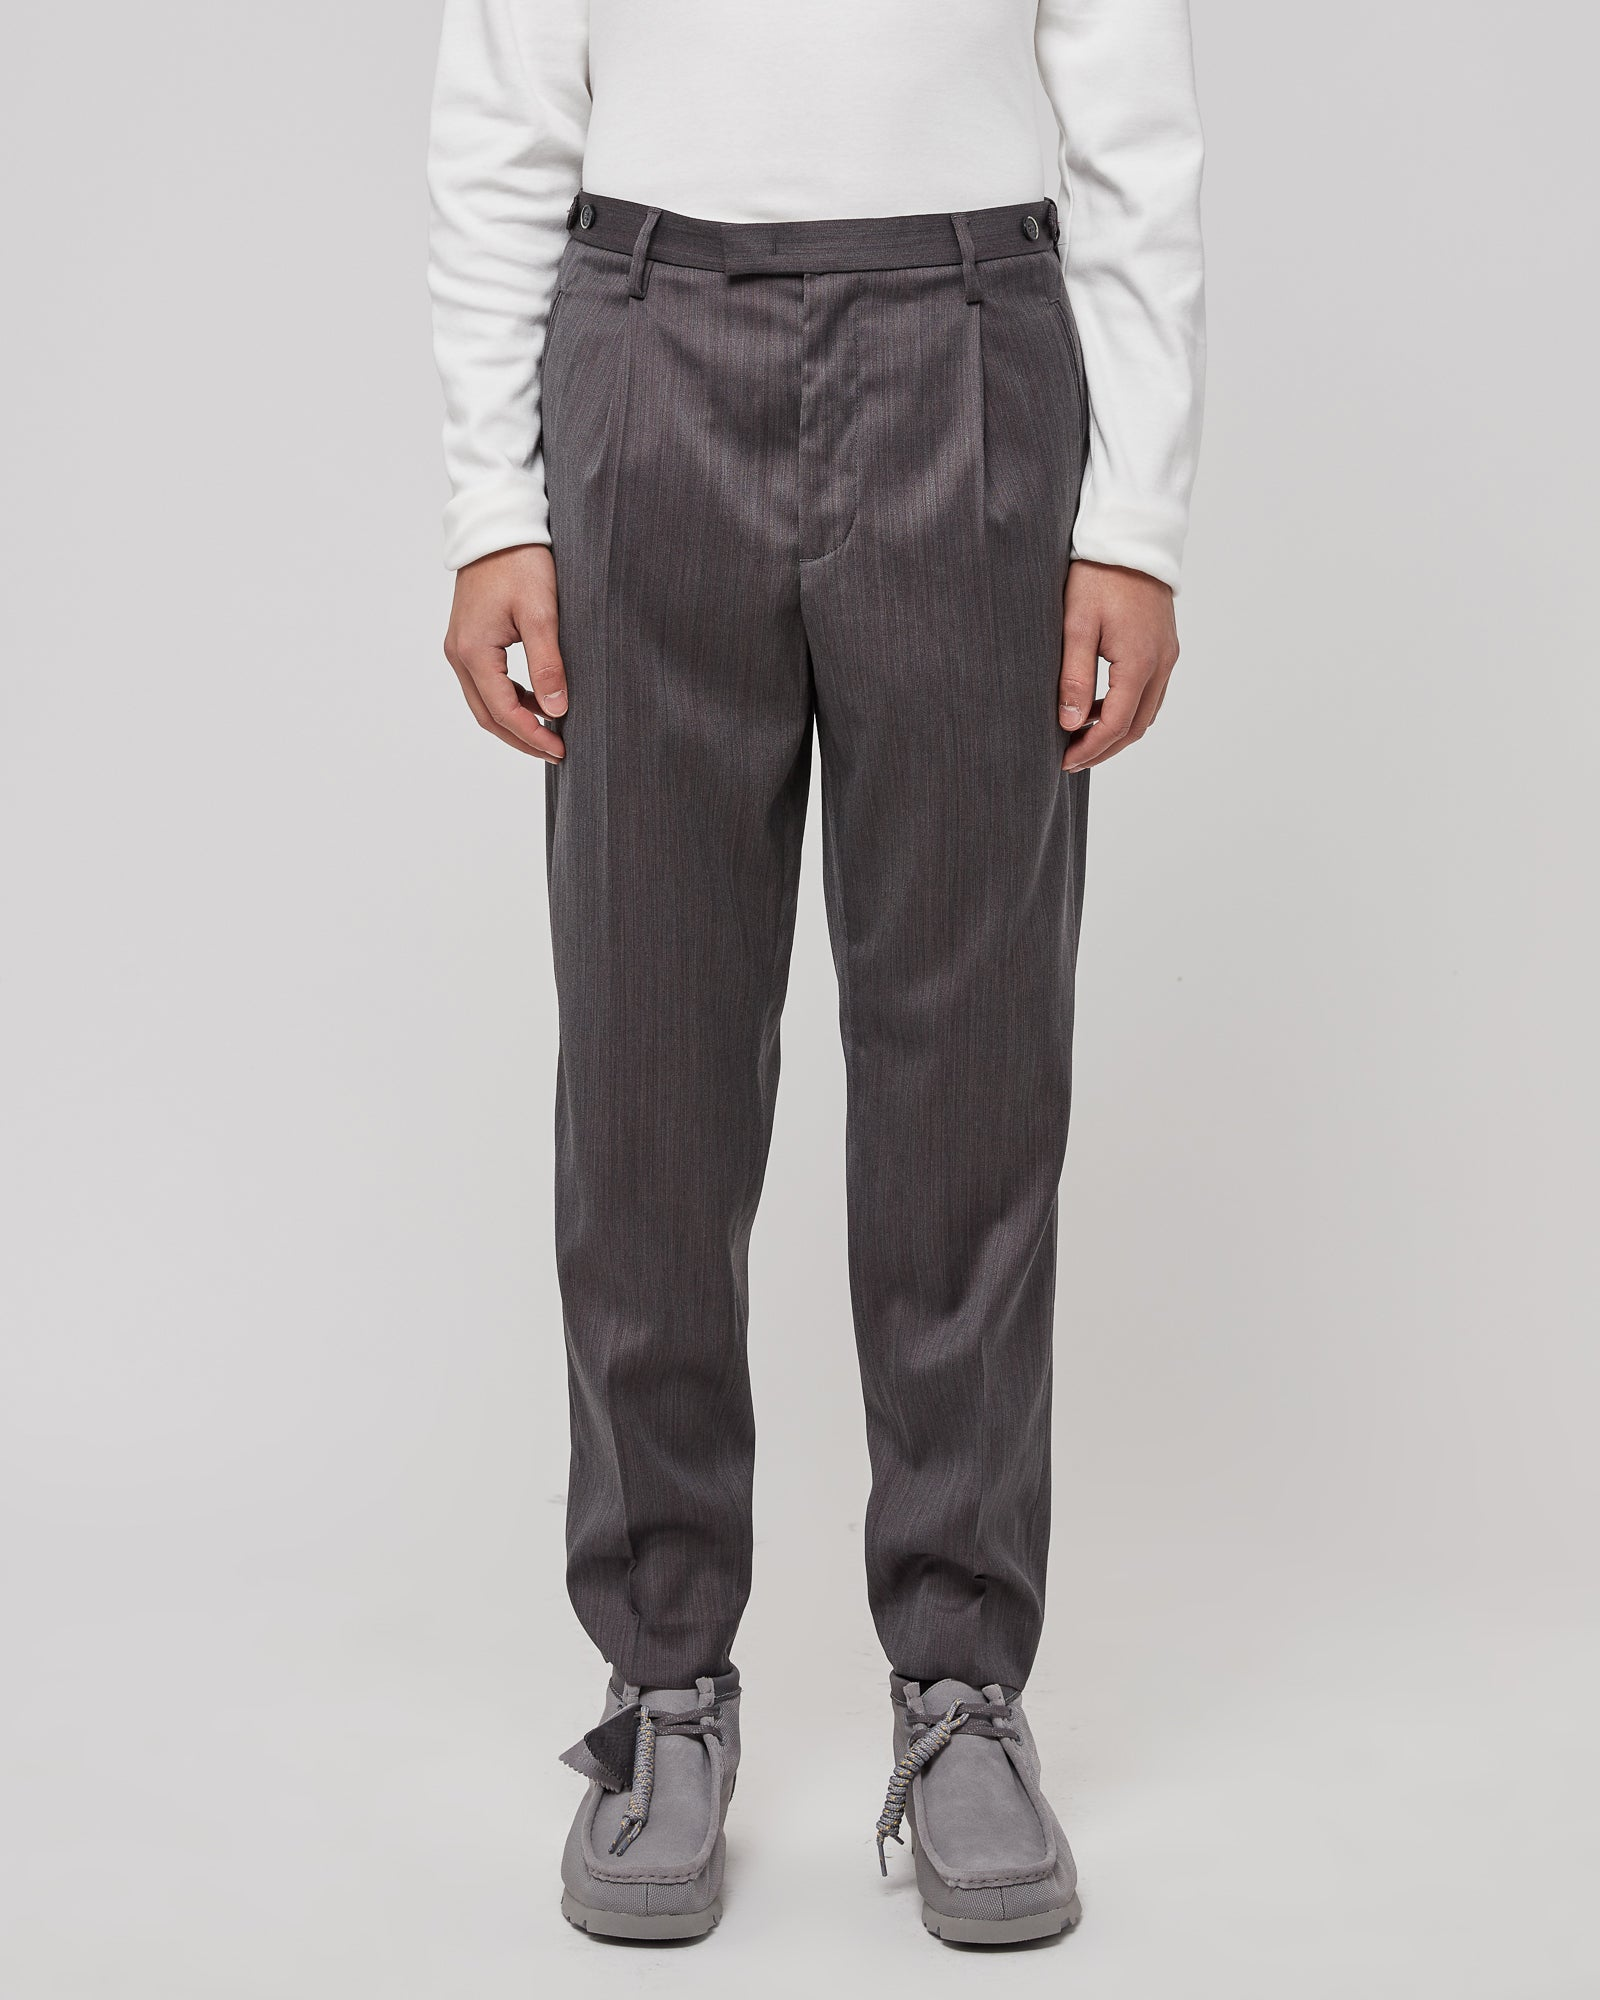 Masco Trousers in Gray